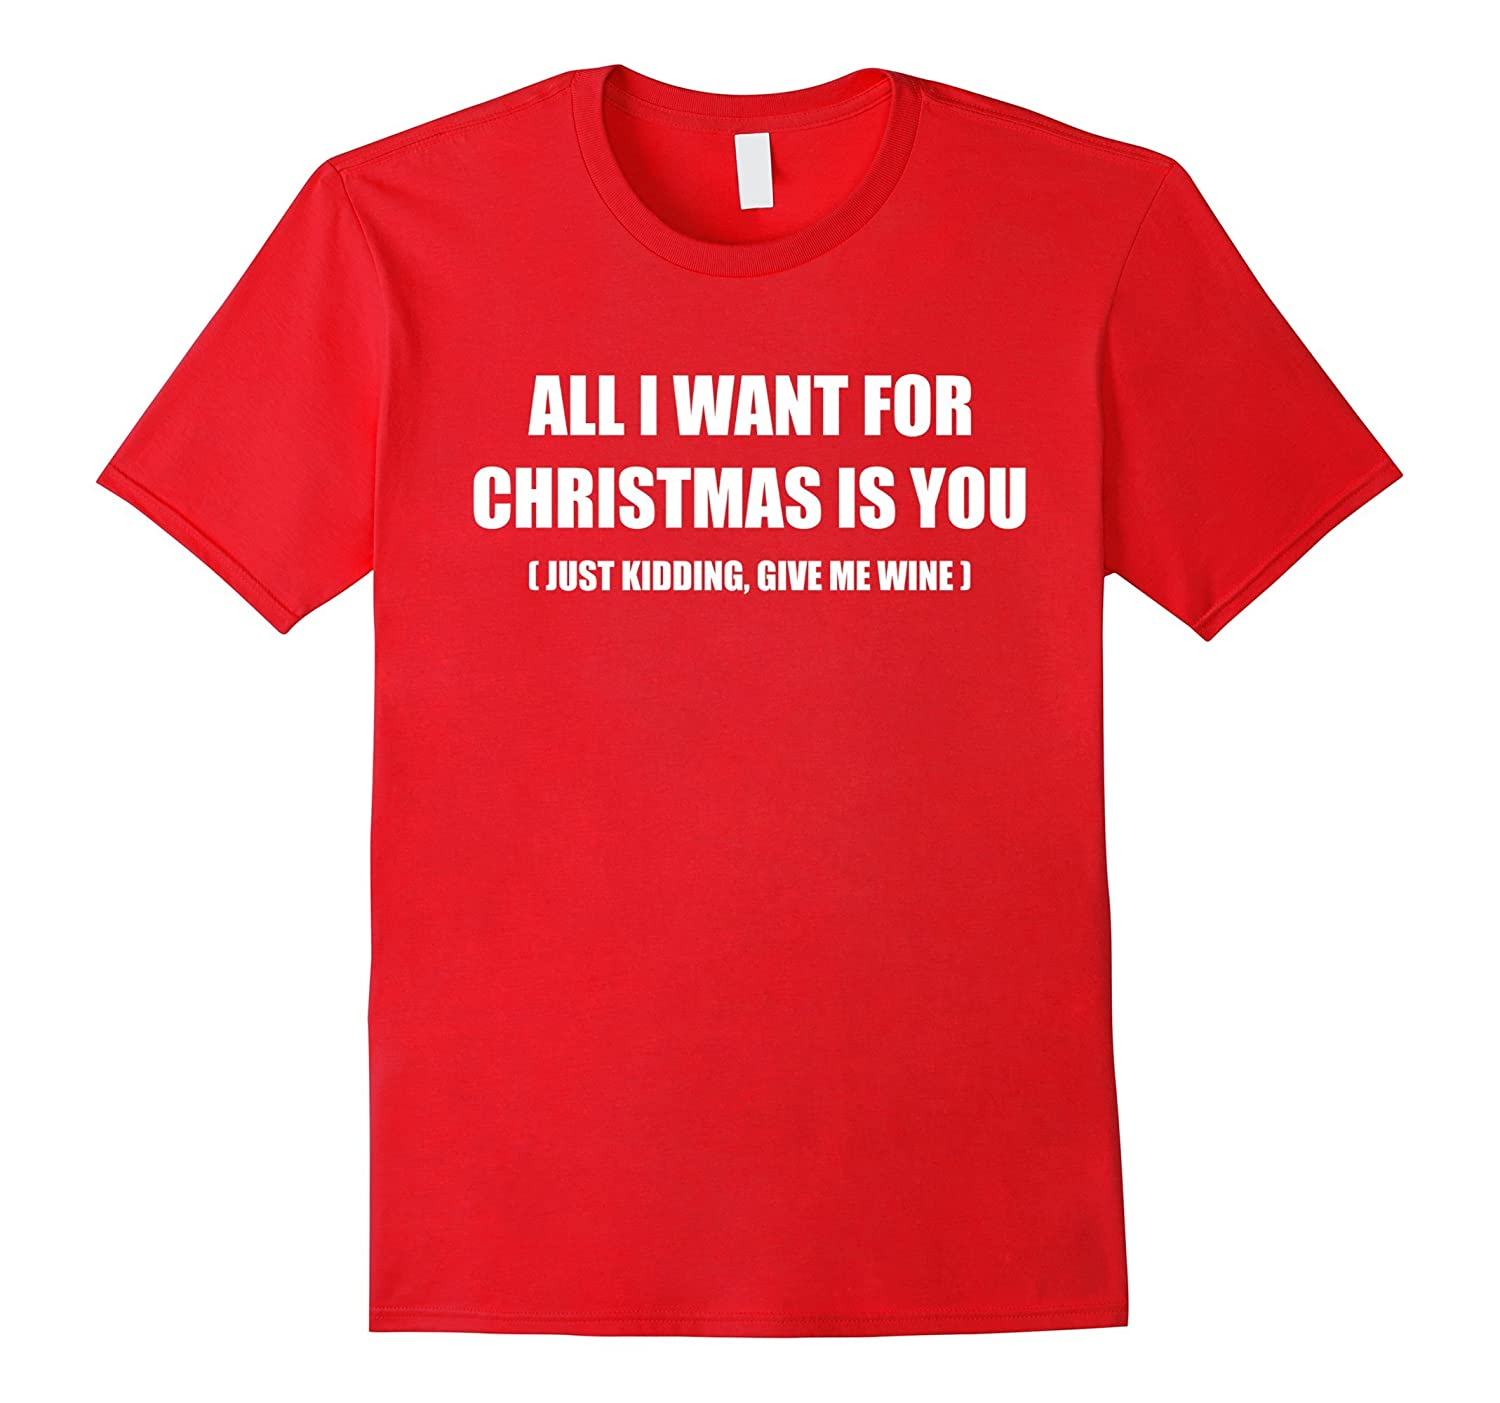 All I Want For Christmas Is You t shirt, Just Kidding I Want-CL